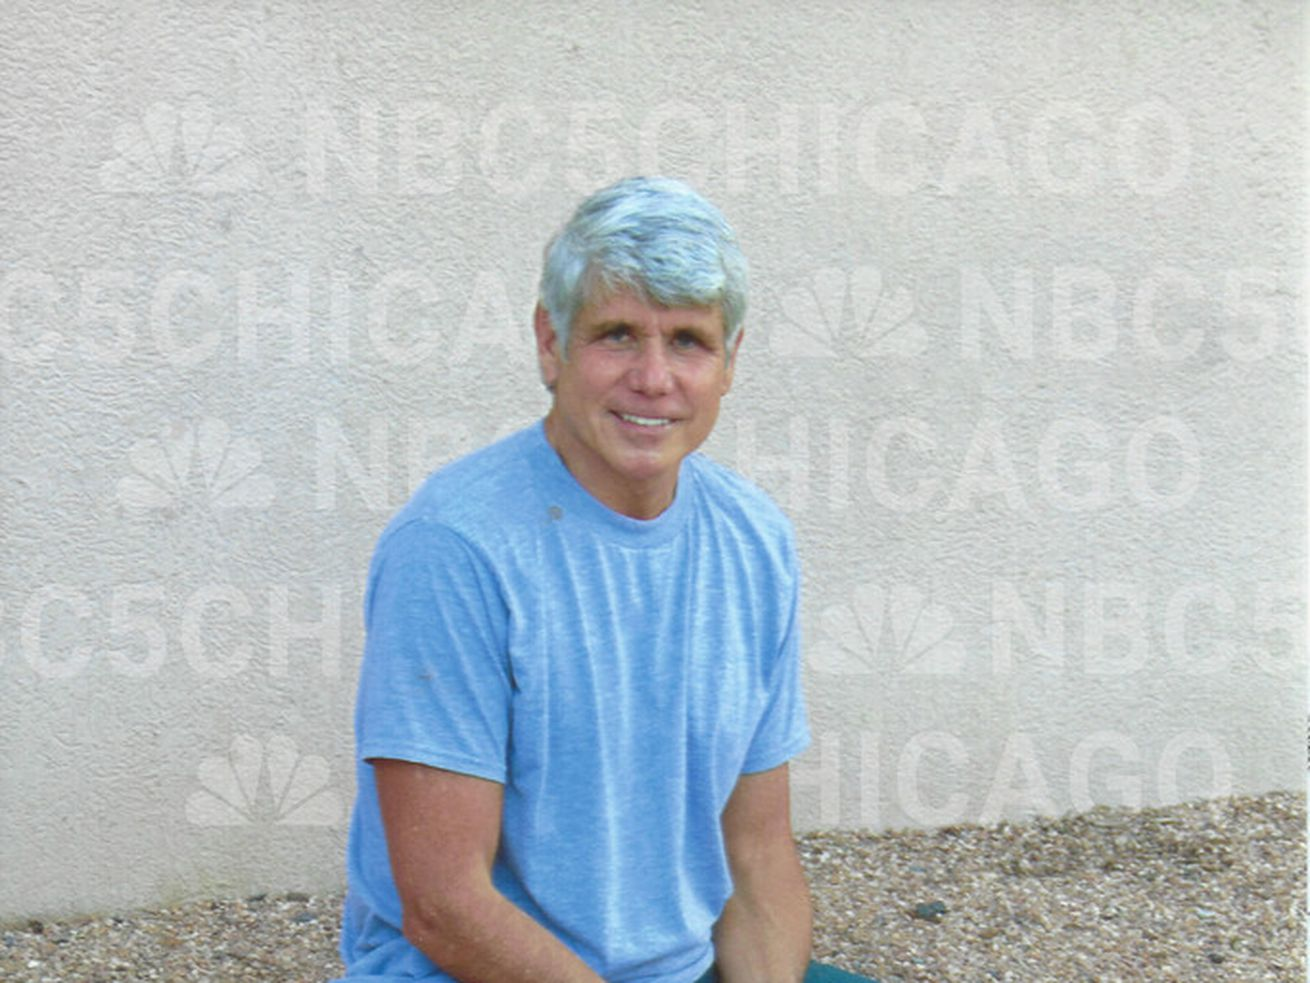 Rod Blagojevich, Inmate No. 40892-424 at the Federal Correctional Institution in Englewood, Colorado. | NBC5 CHICAGO PHOTO